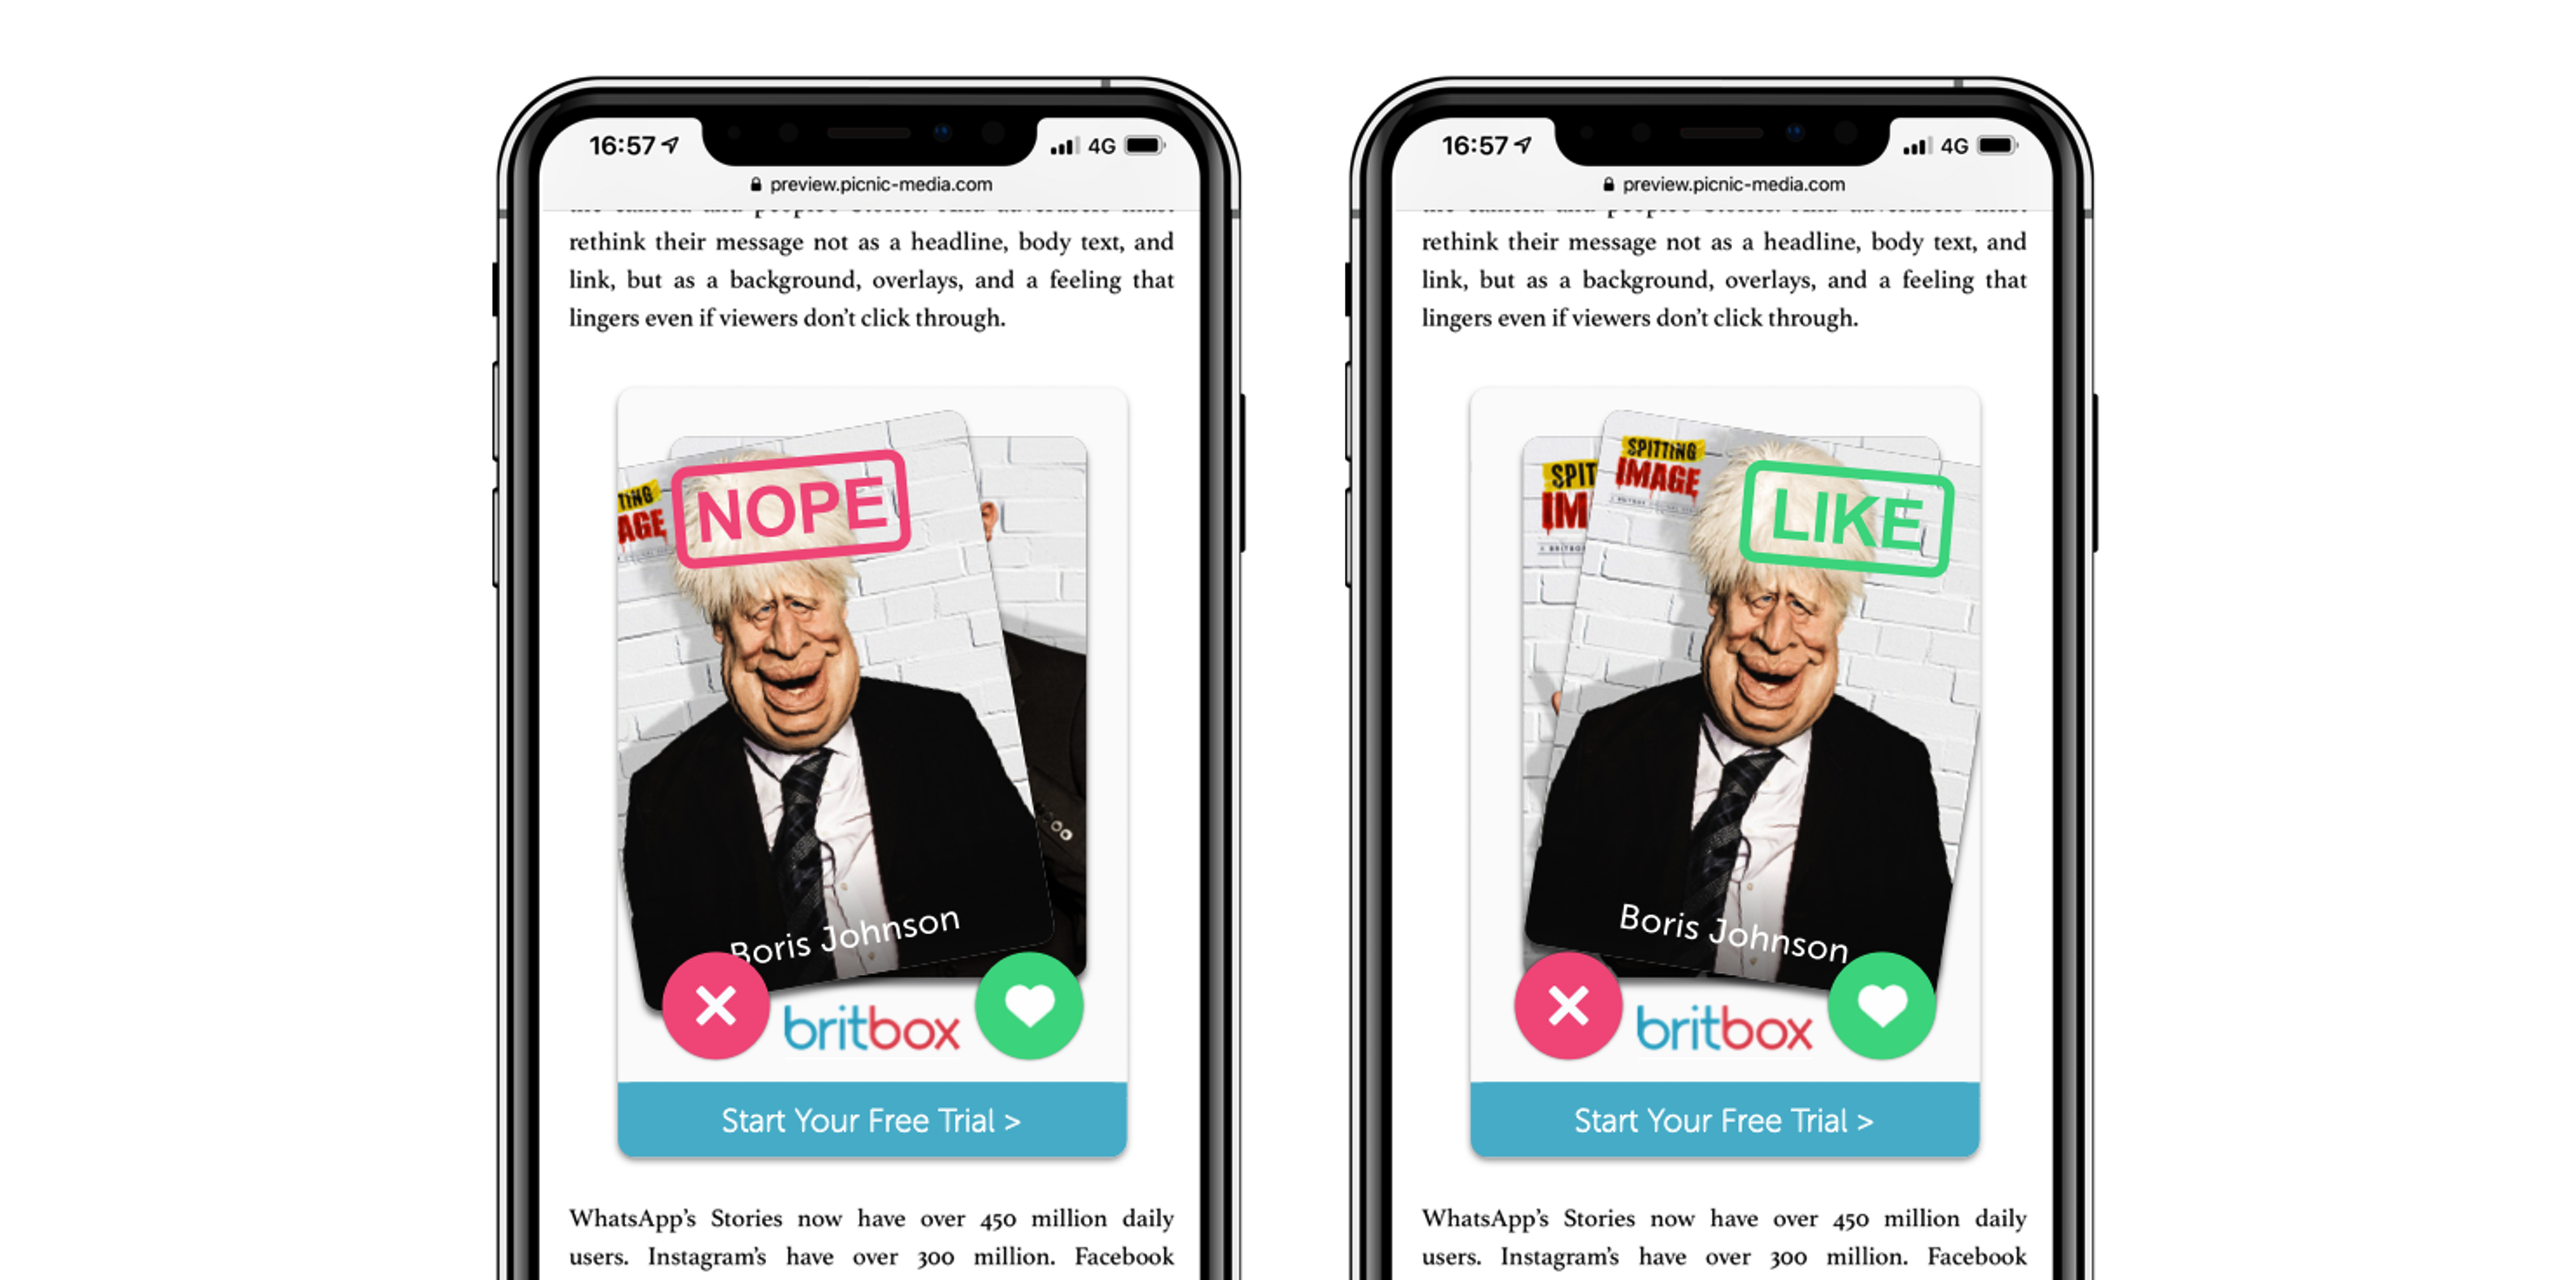 Total Media Launches BritBox's Spitting Image with New Mobile Format